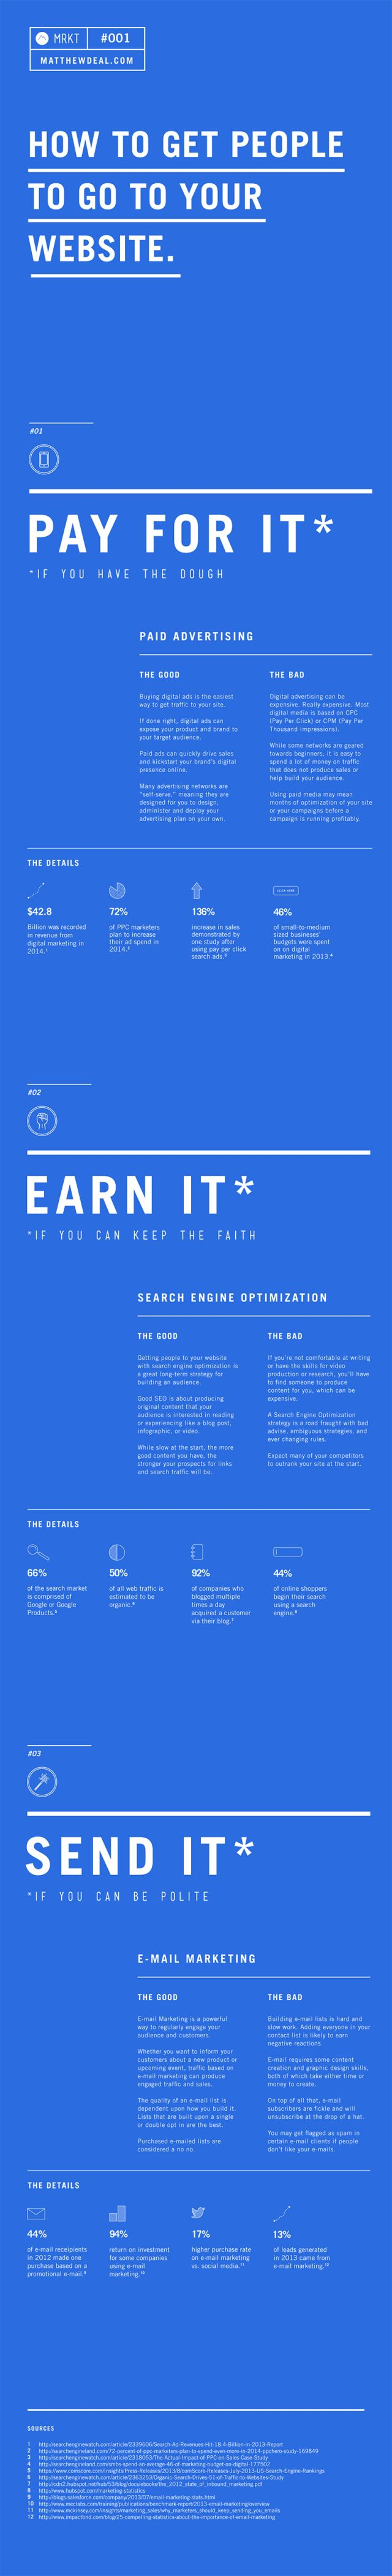 Advertising-Infographics-Marketing-Basics-How-to-Get-More-People-Visiting-Your-Website-Infographic Advertising Infographics : Marketing Basics How to Get More People Visiting Your Website #Infographic